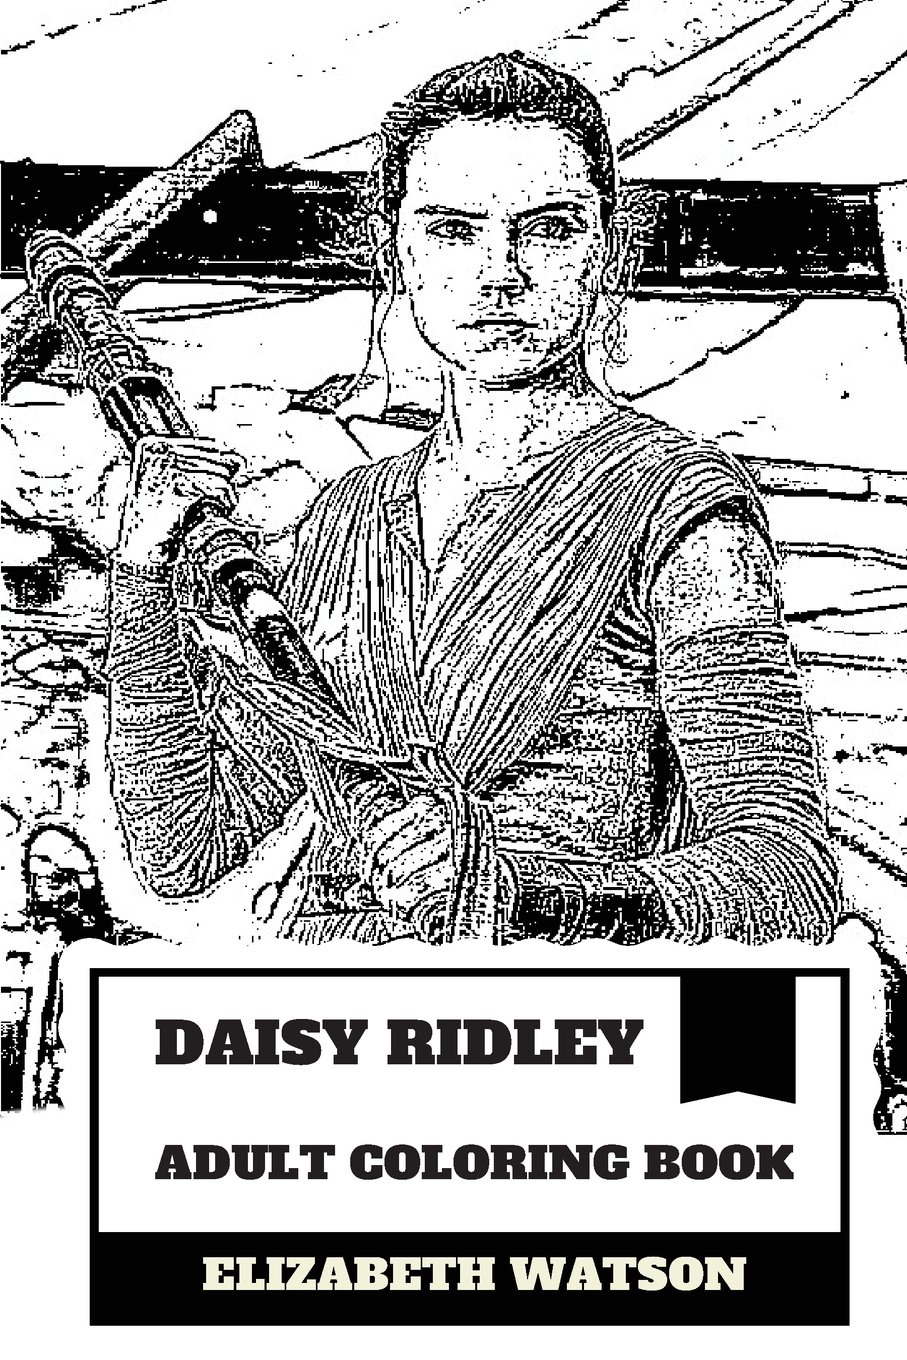 Daisy Ridley Adult Coloring Book Rey From Star Wars Reboot